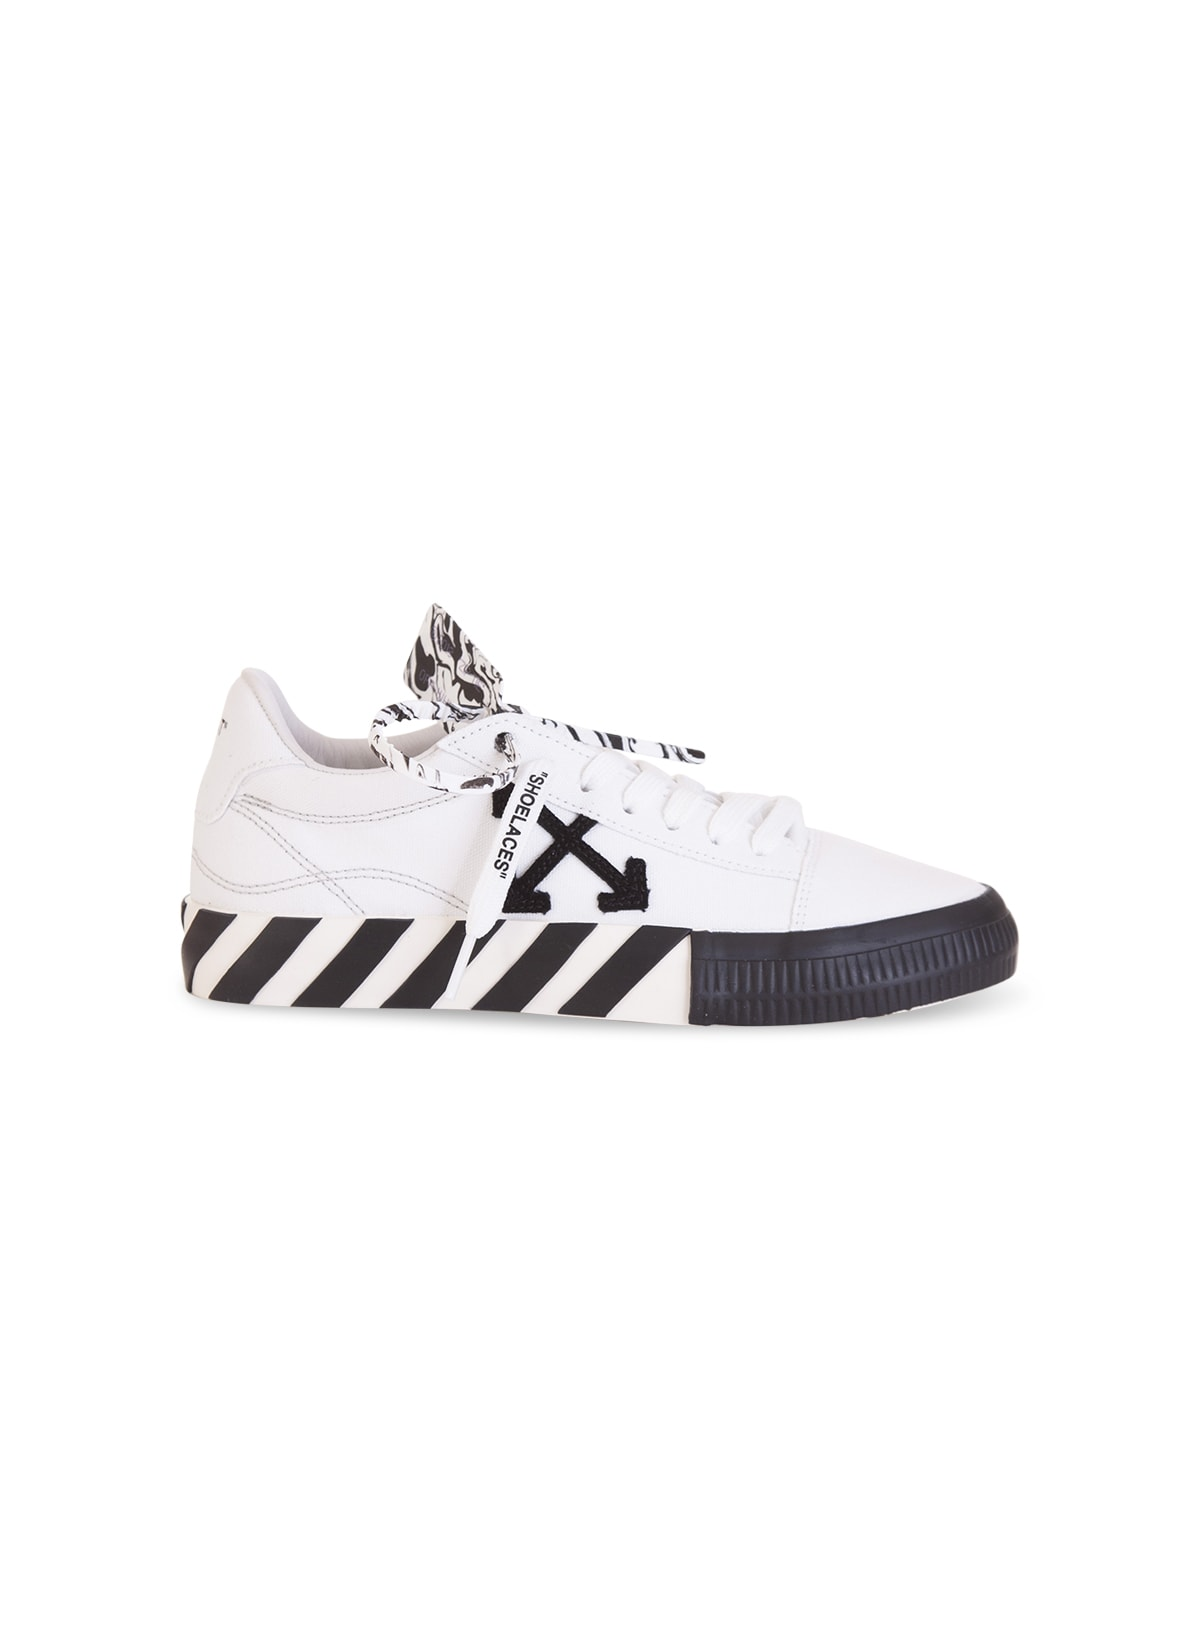 Off-White Low tops OFF-WHITE ARROWS LOW-TOP SNEAKERS